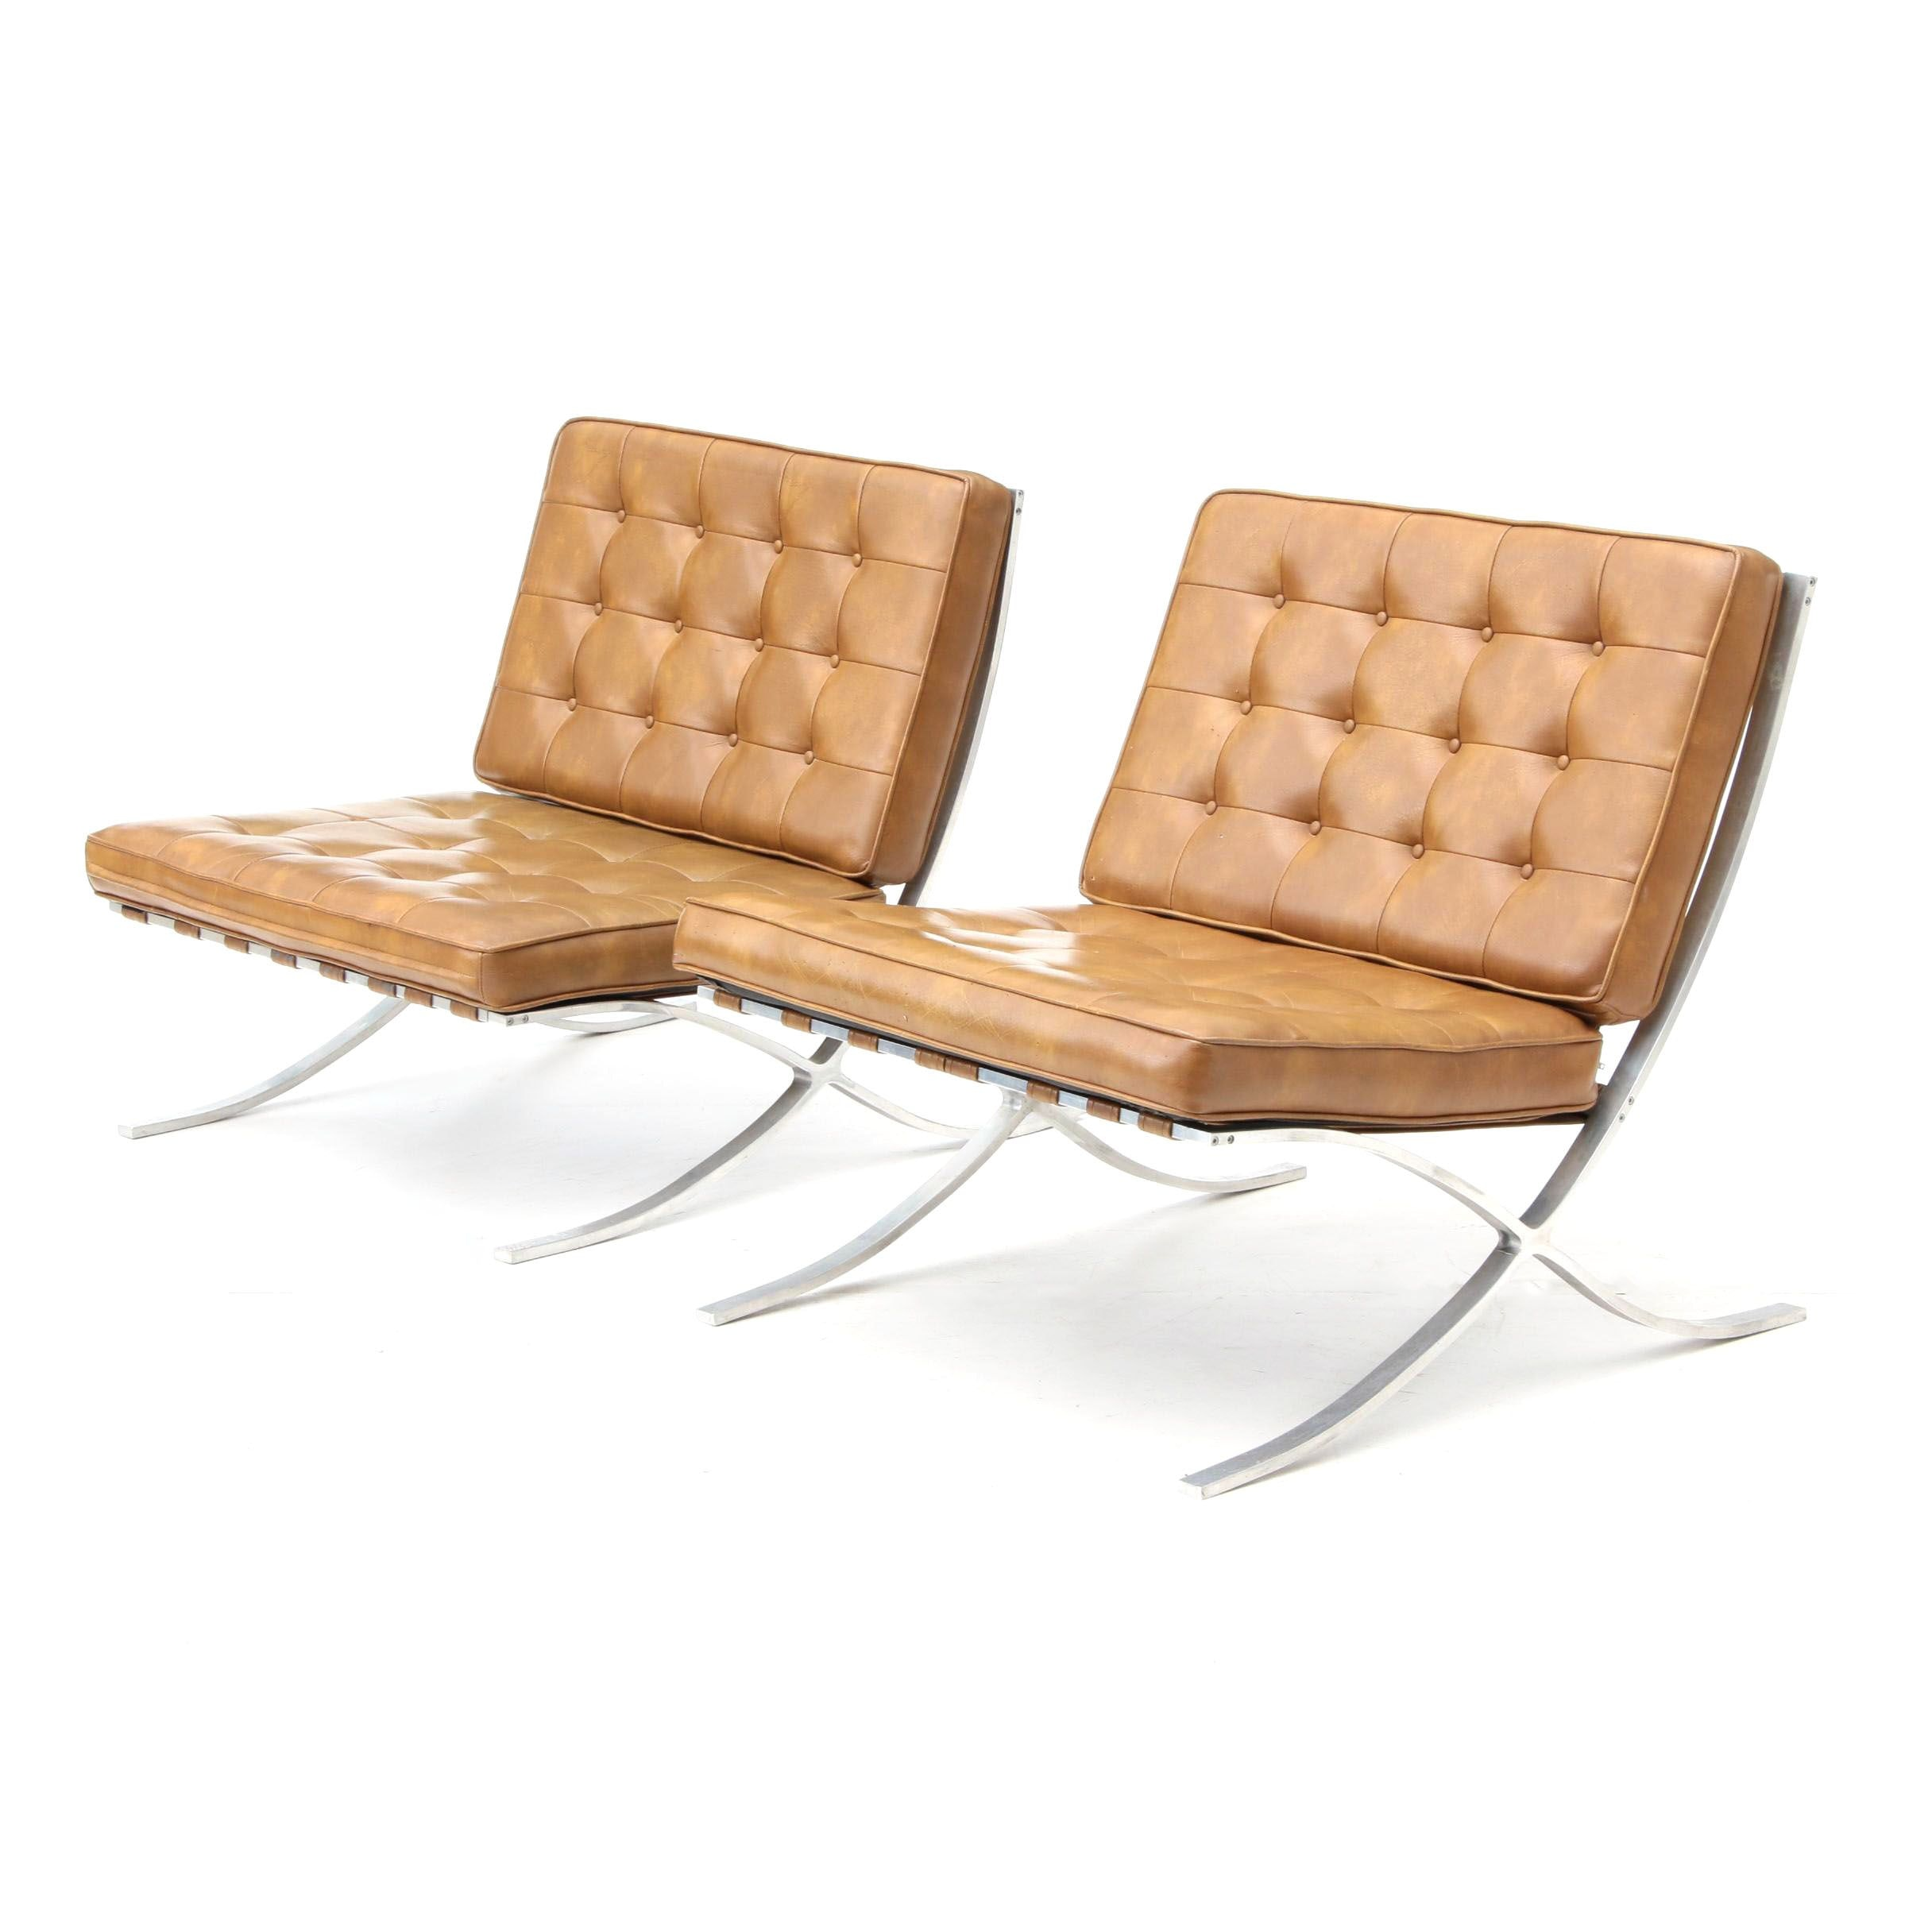 Pair of Barcelona Style Chairs, Mid-20th Century